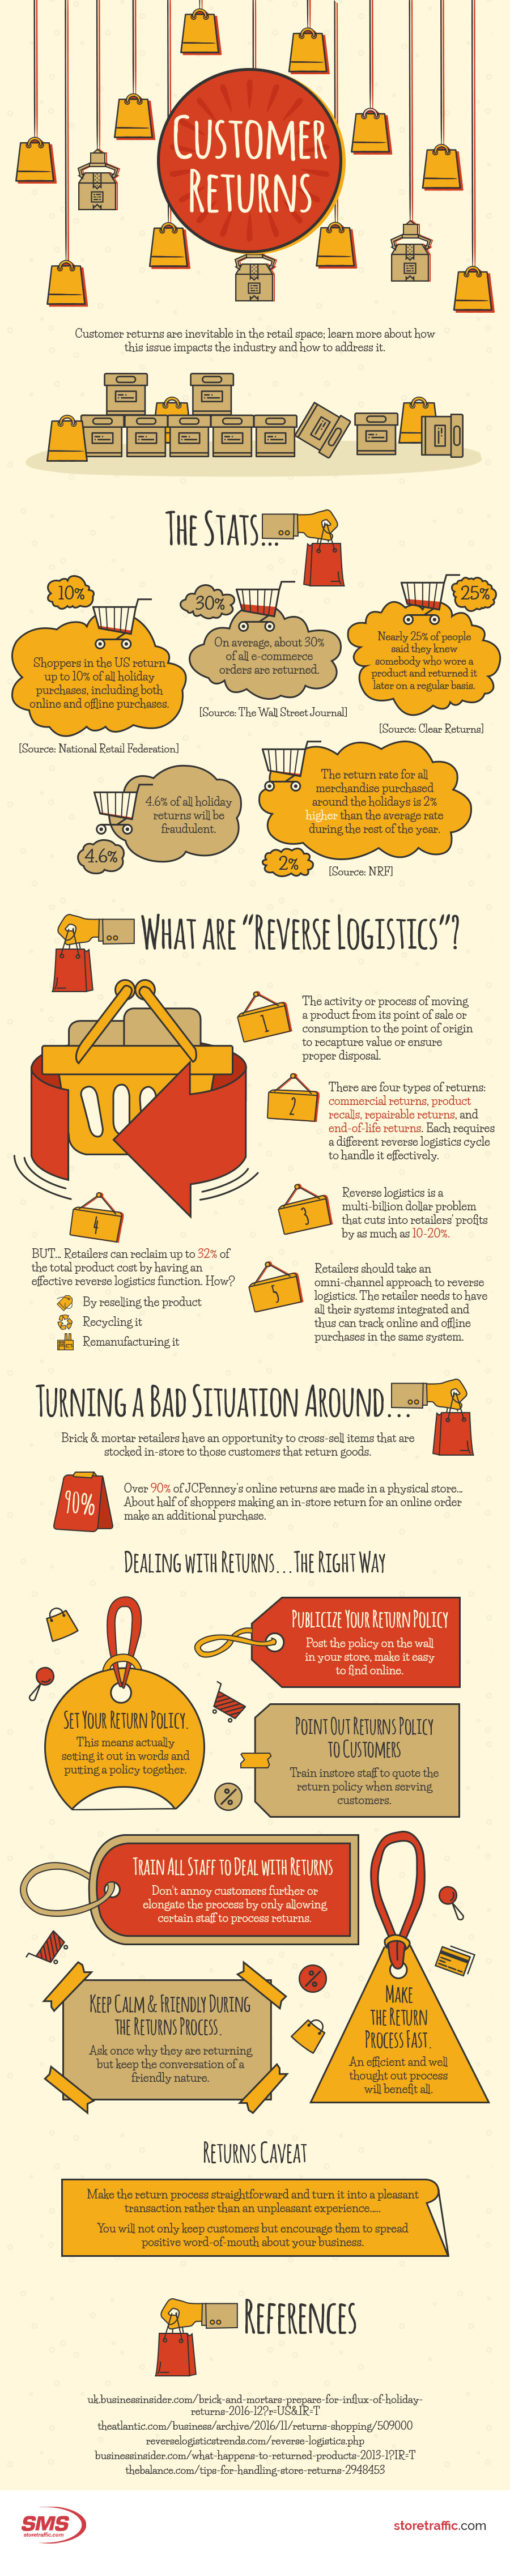 Dealing with Retail Store Customer Returns - Infographic